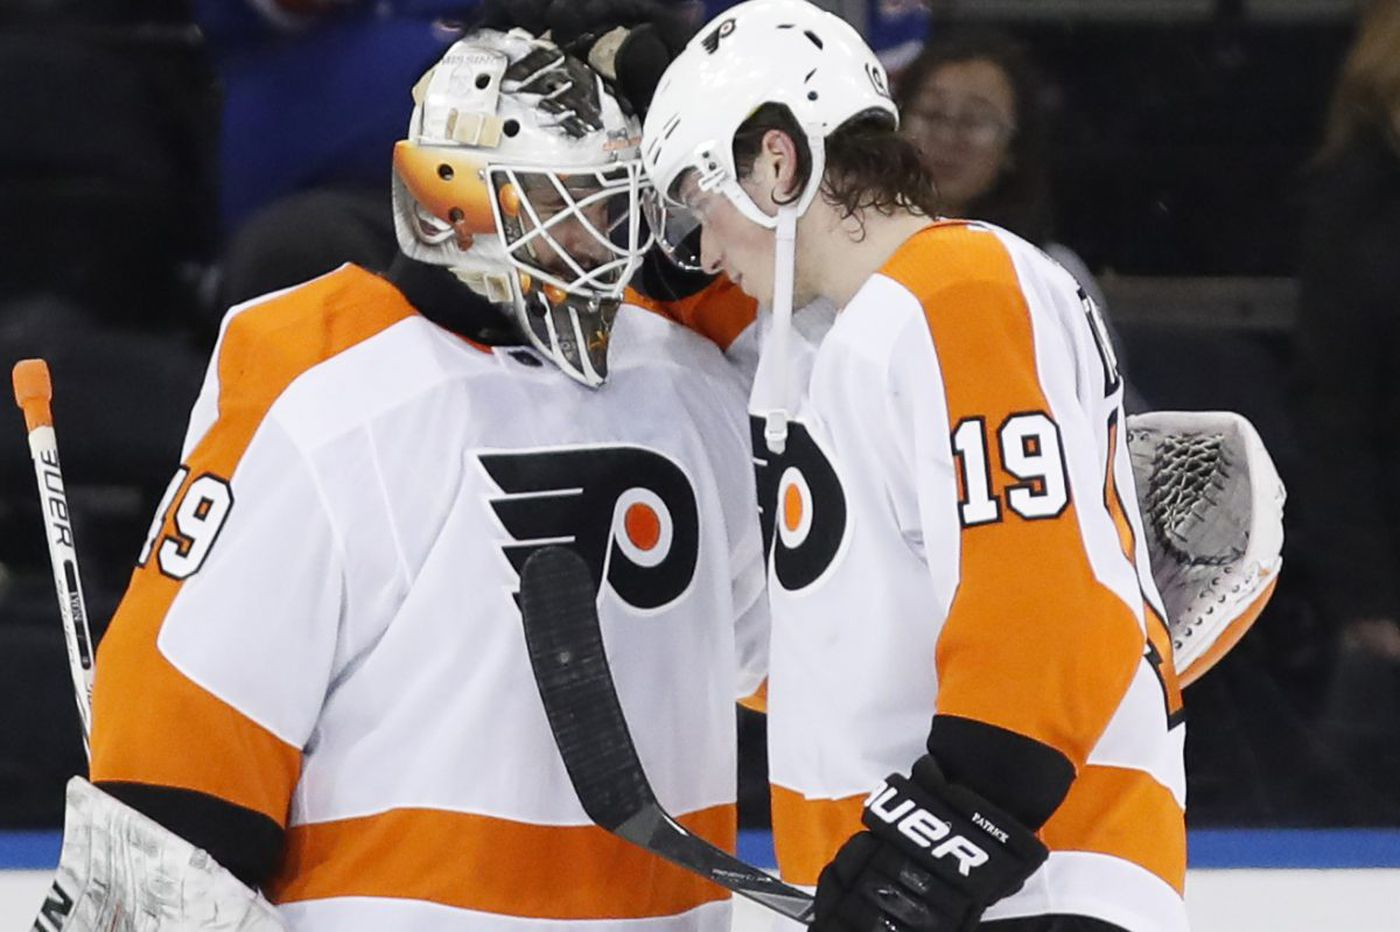 Alex Lyon was Flyers' No. 1 goalie … for a day